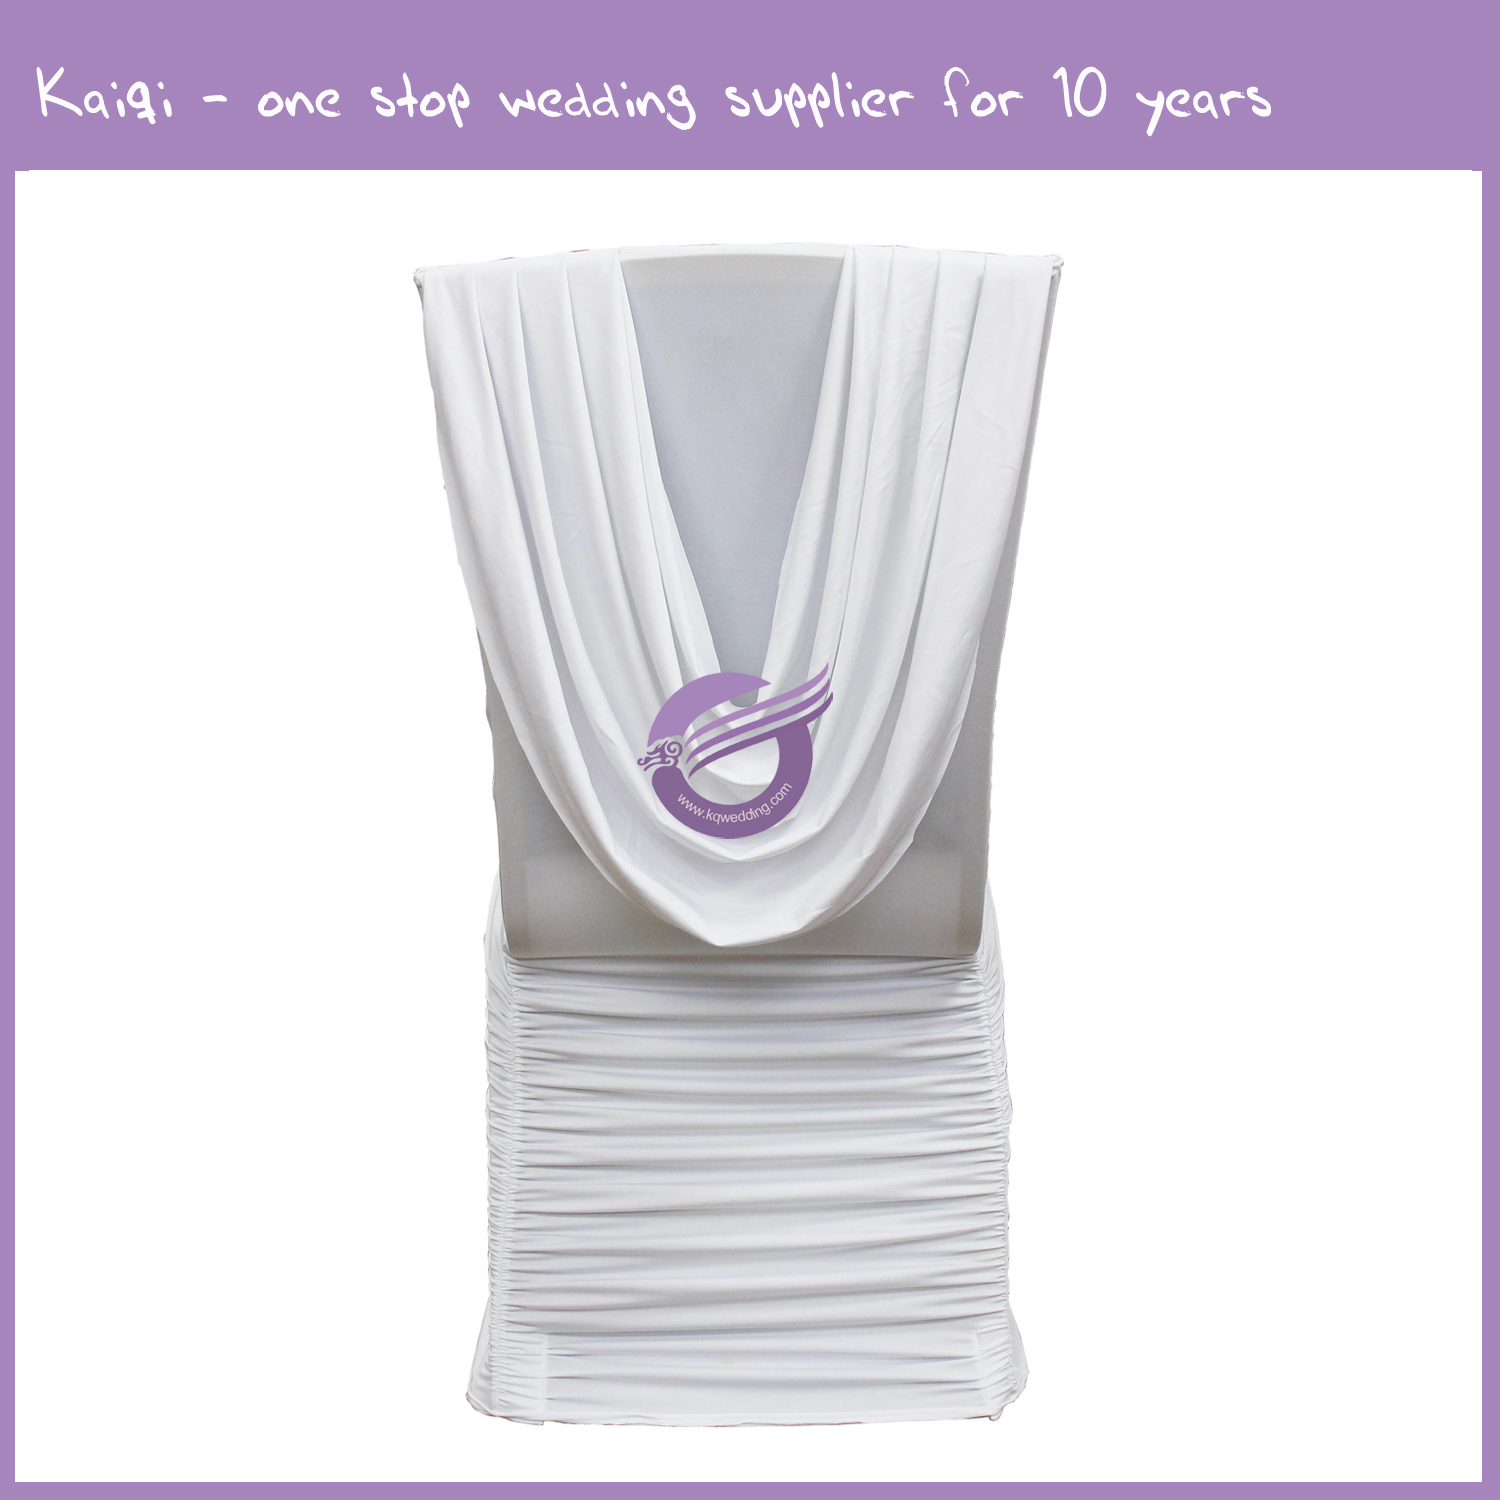 White Attached Ties Spandex Chair Cover 987 Kaiqi Wedding